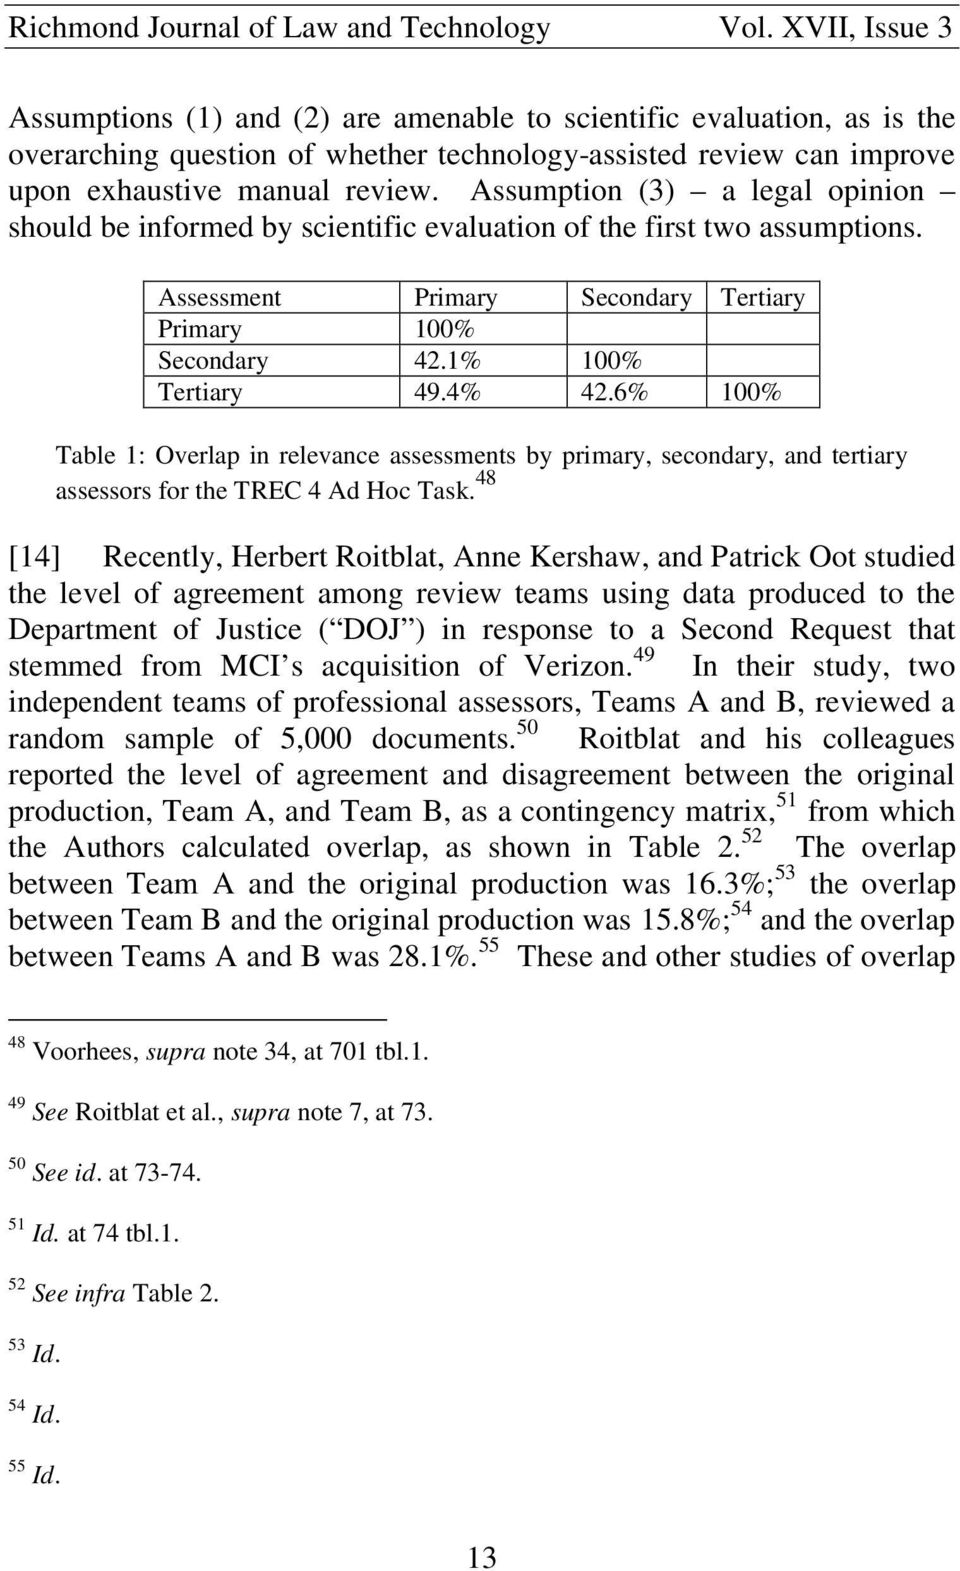 6% 100% Table 1: Overlap in relevance assessments by primary, secondary, and tertiary assessors for the TREC 4 Ad Hoc Task.